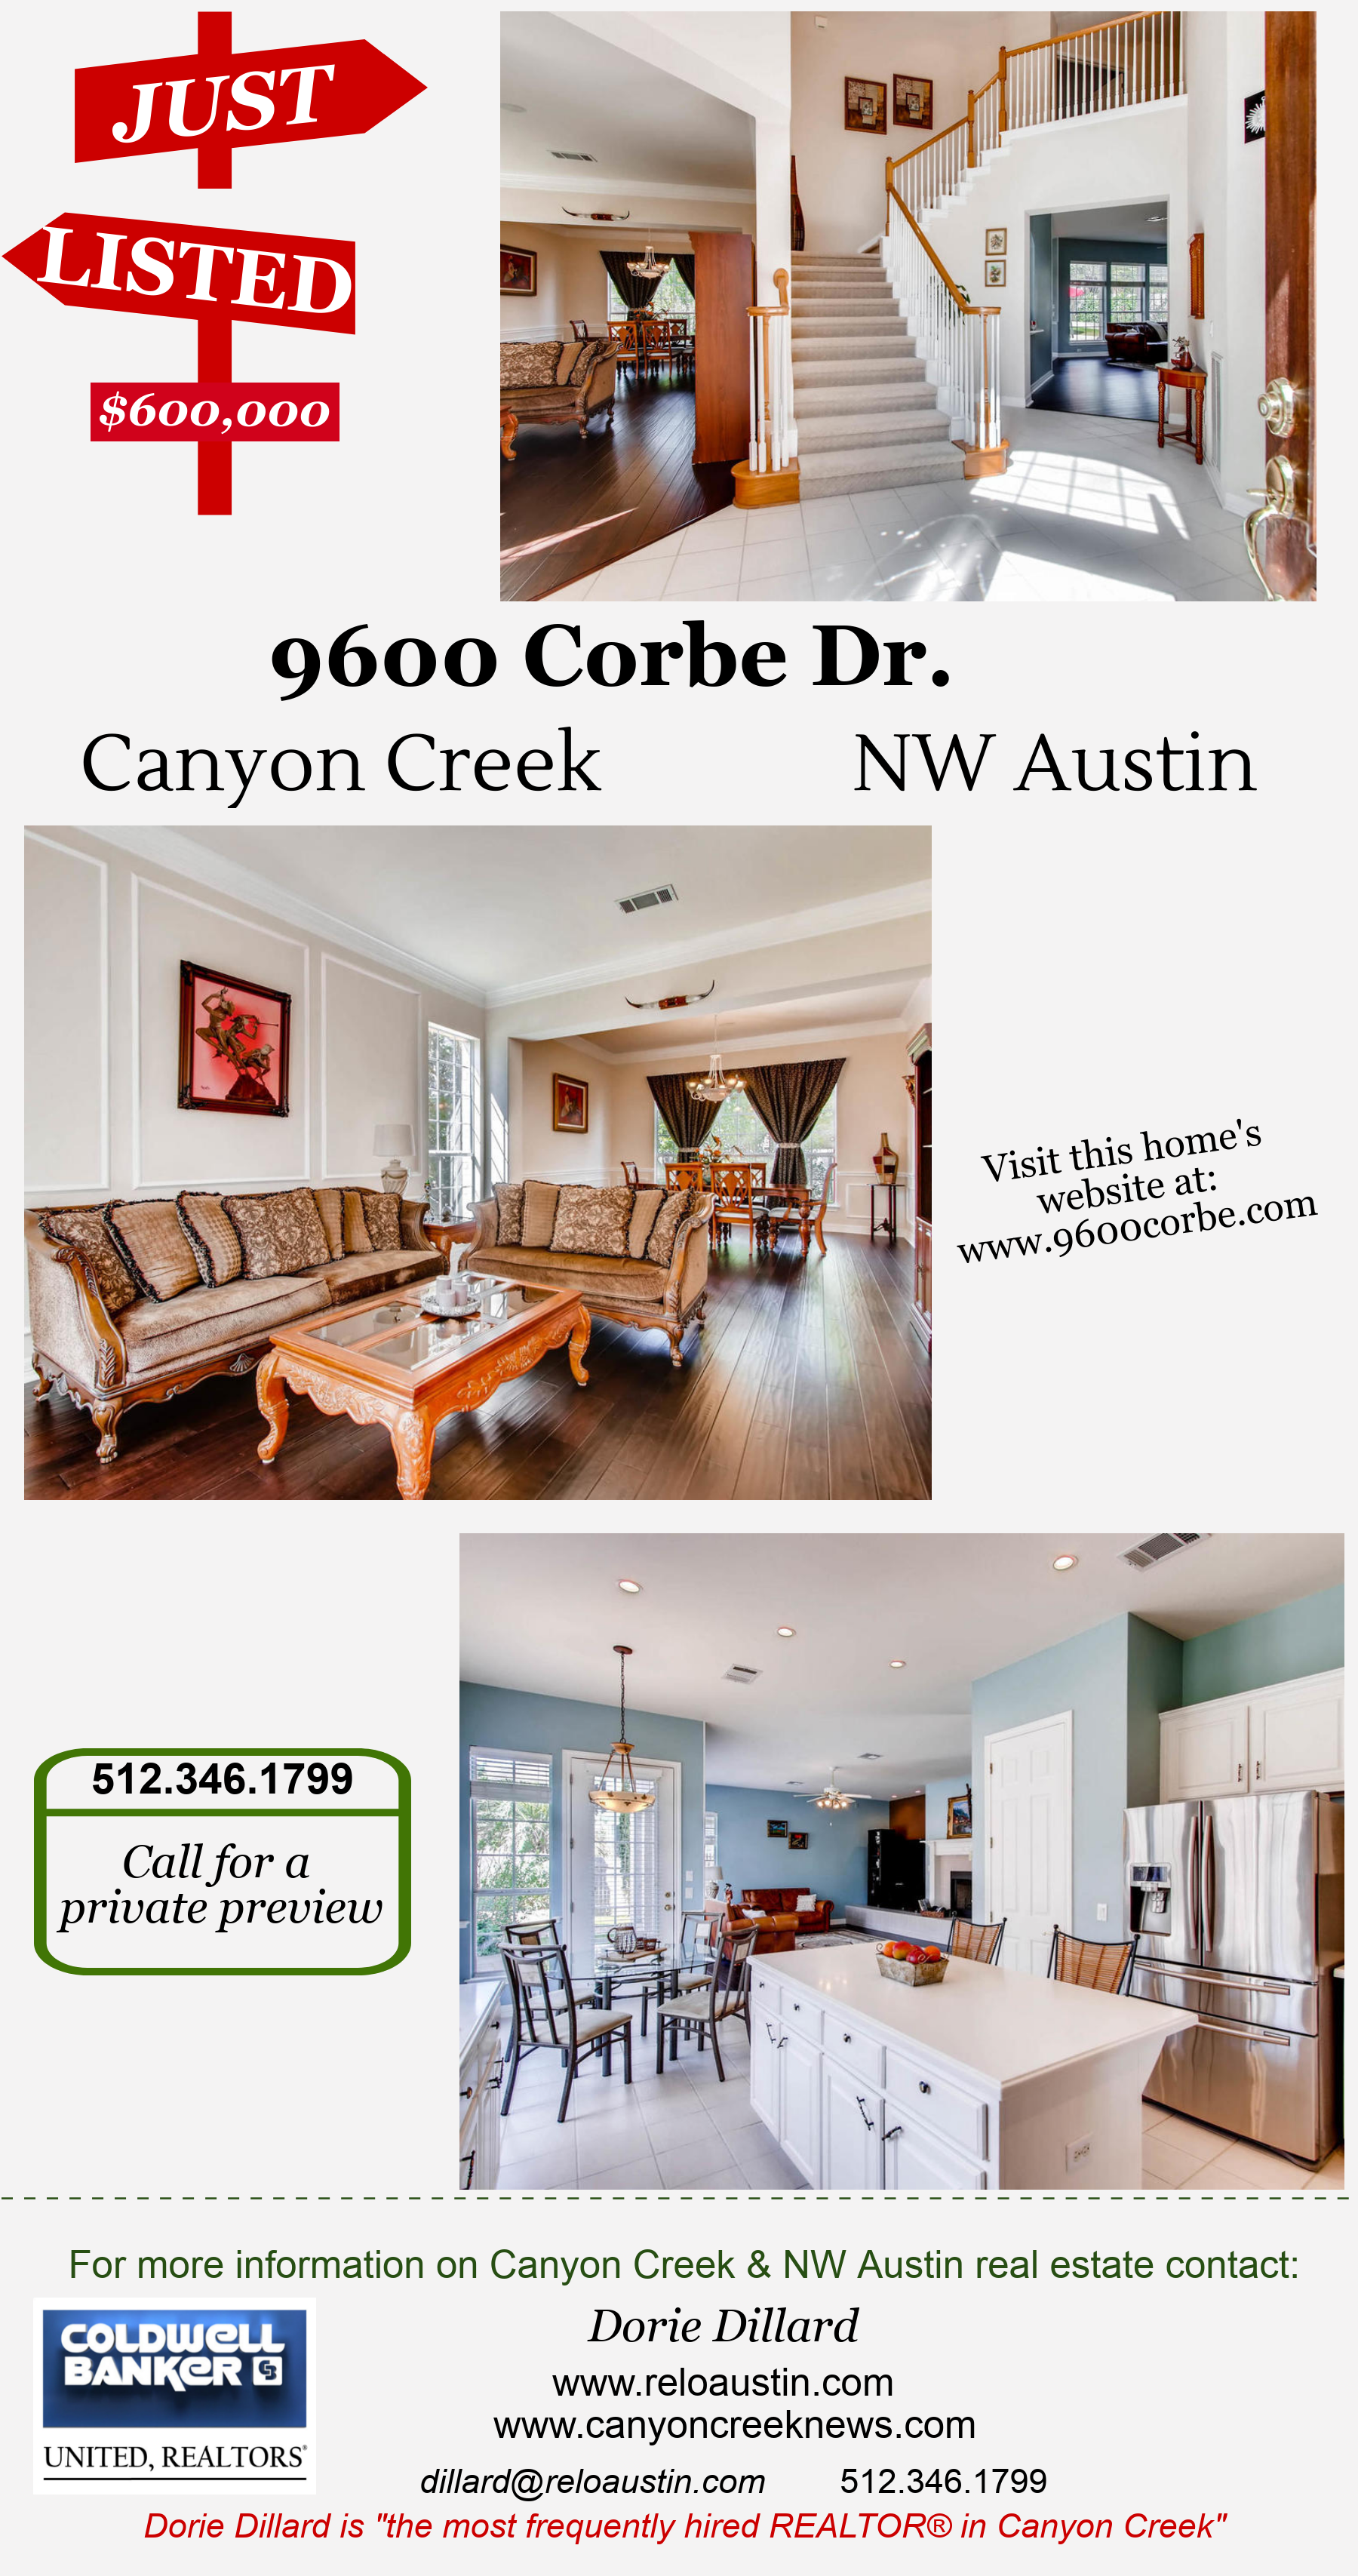 NW Austin: 2 story JUST LISTED in Corbe Estates